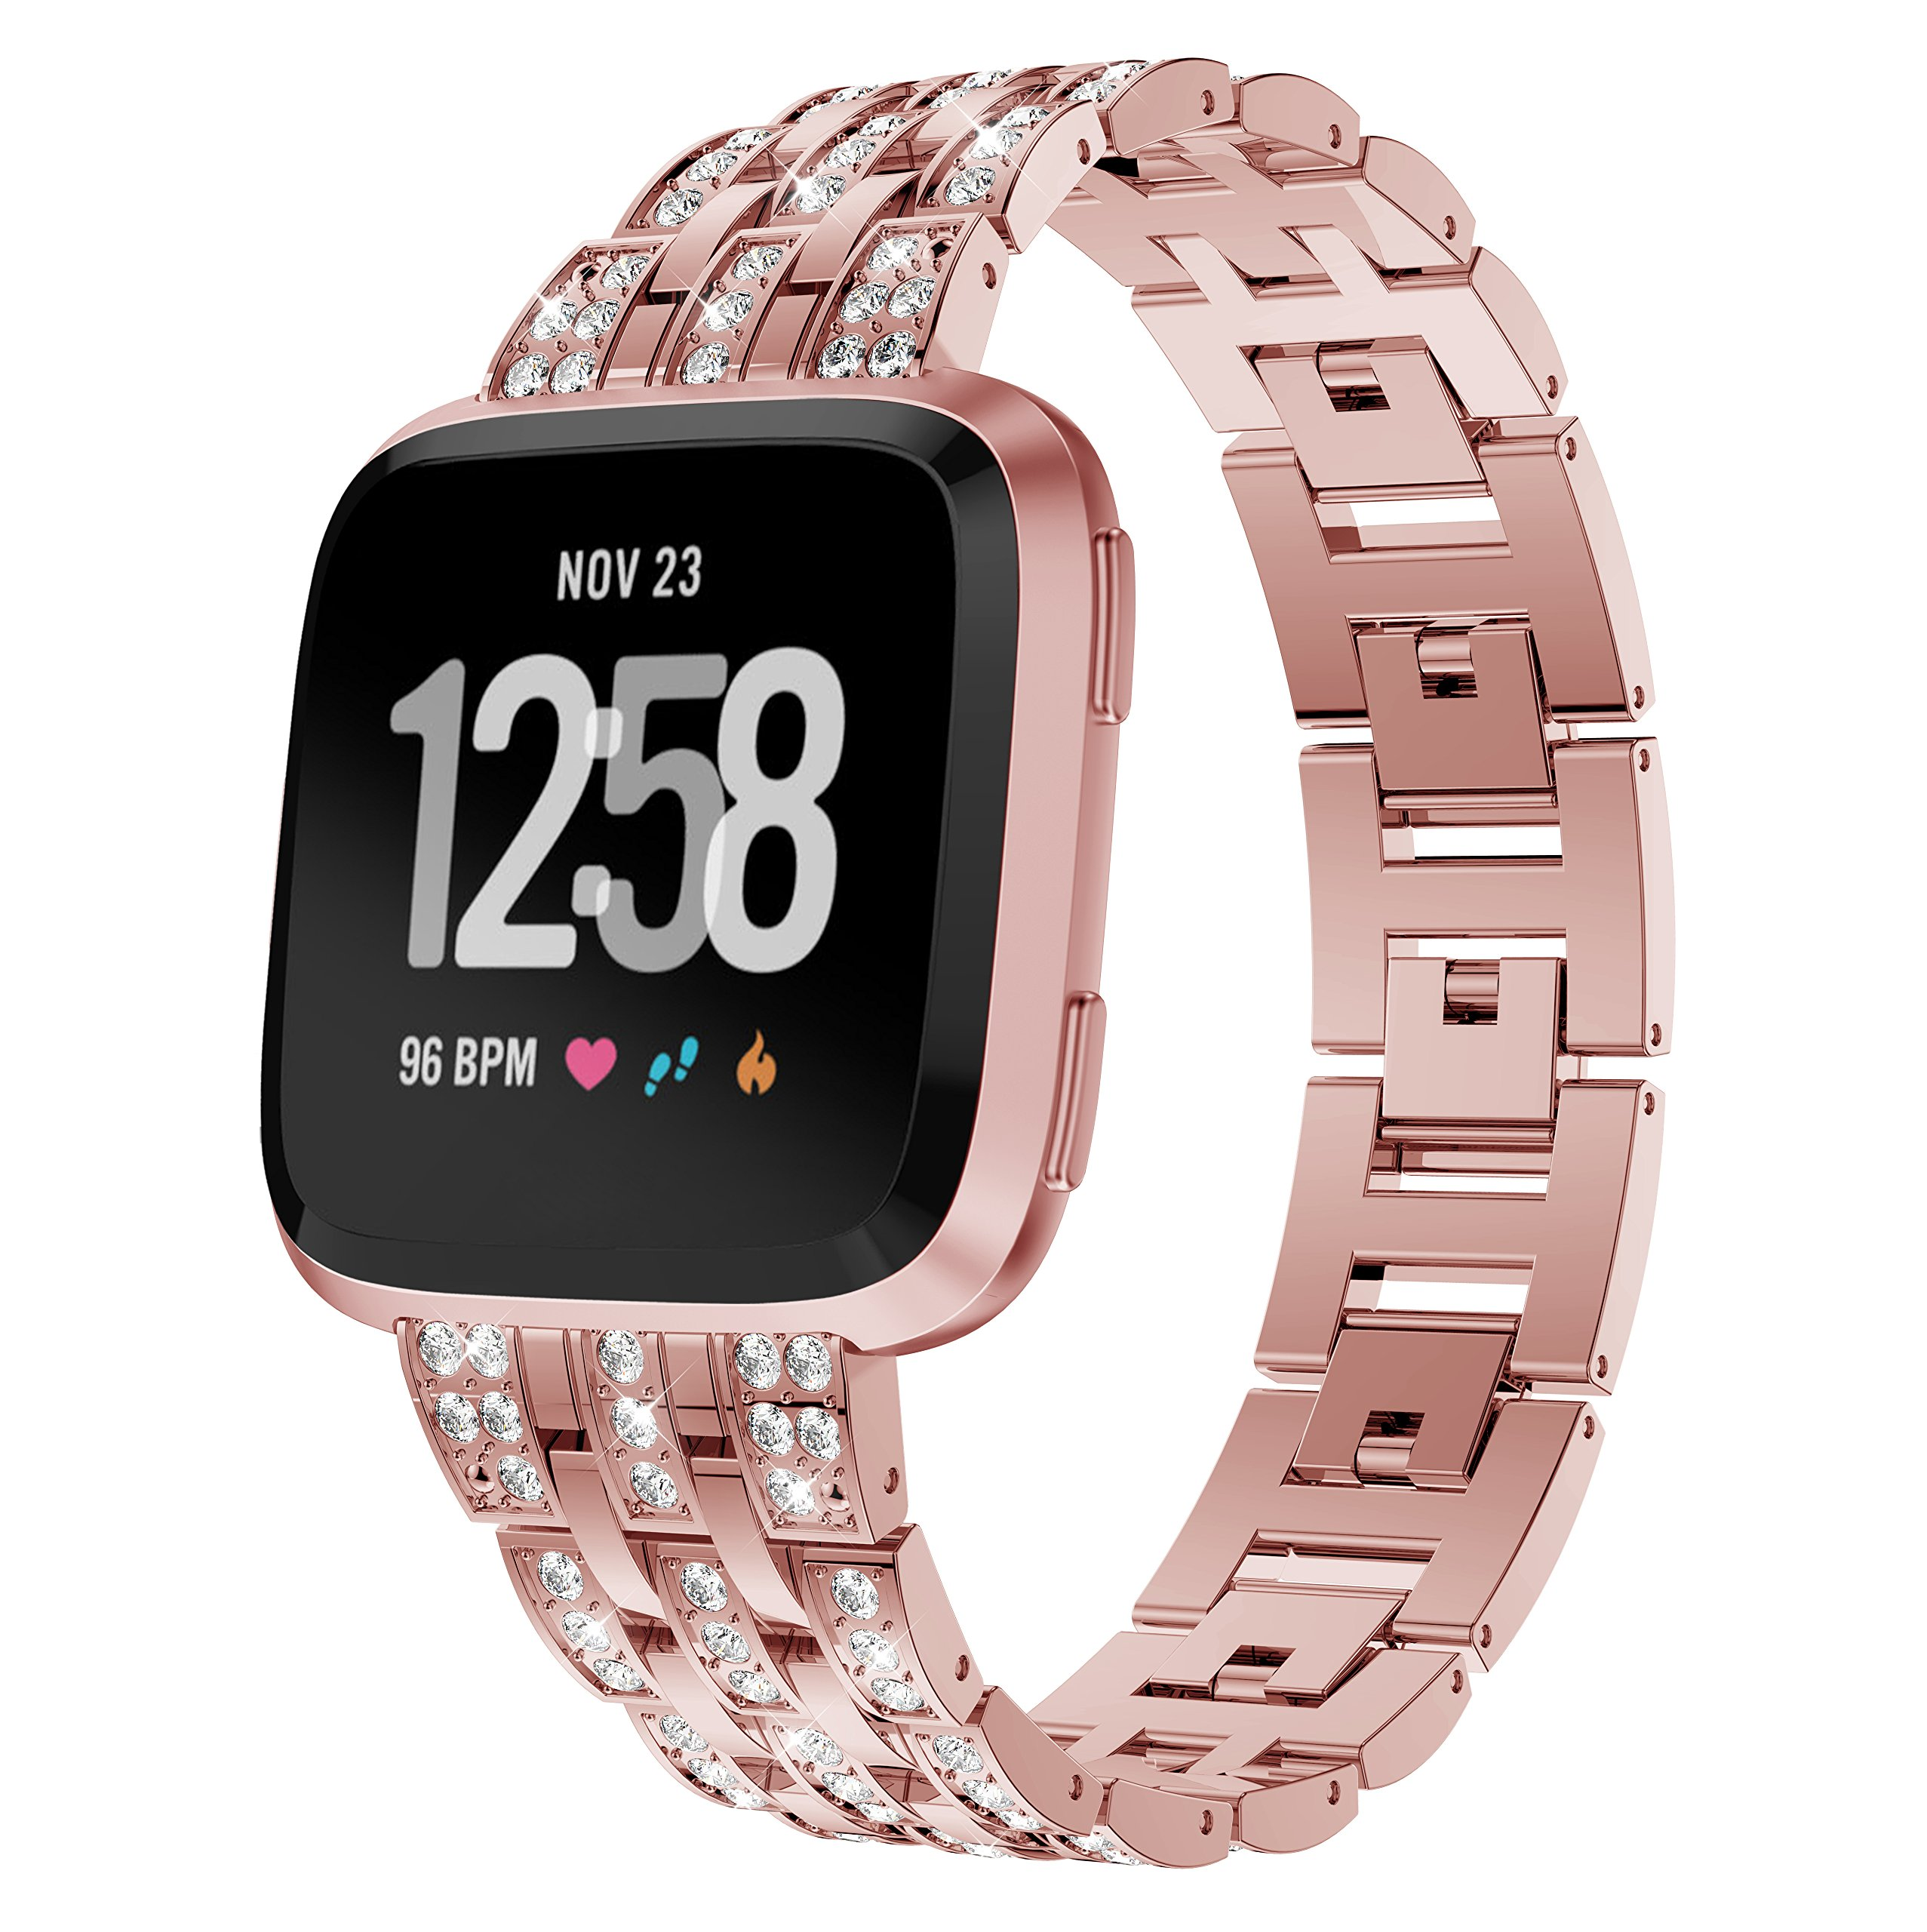 KisFace Metal Band for Fitbit Versa,Rhinestone Series Accessories Quick Release Unit Design for Fitbit Versa Band(Rose Gold match Watch).